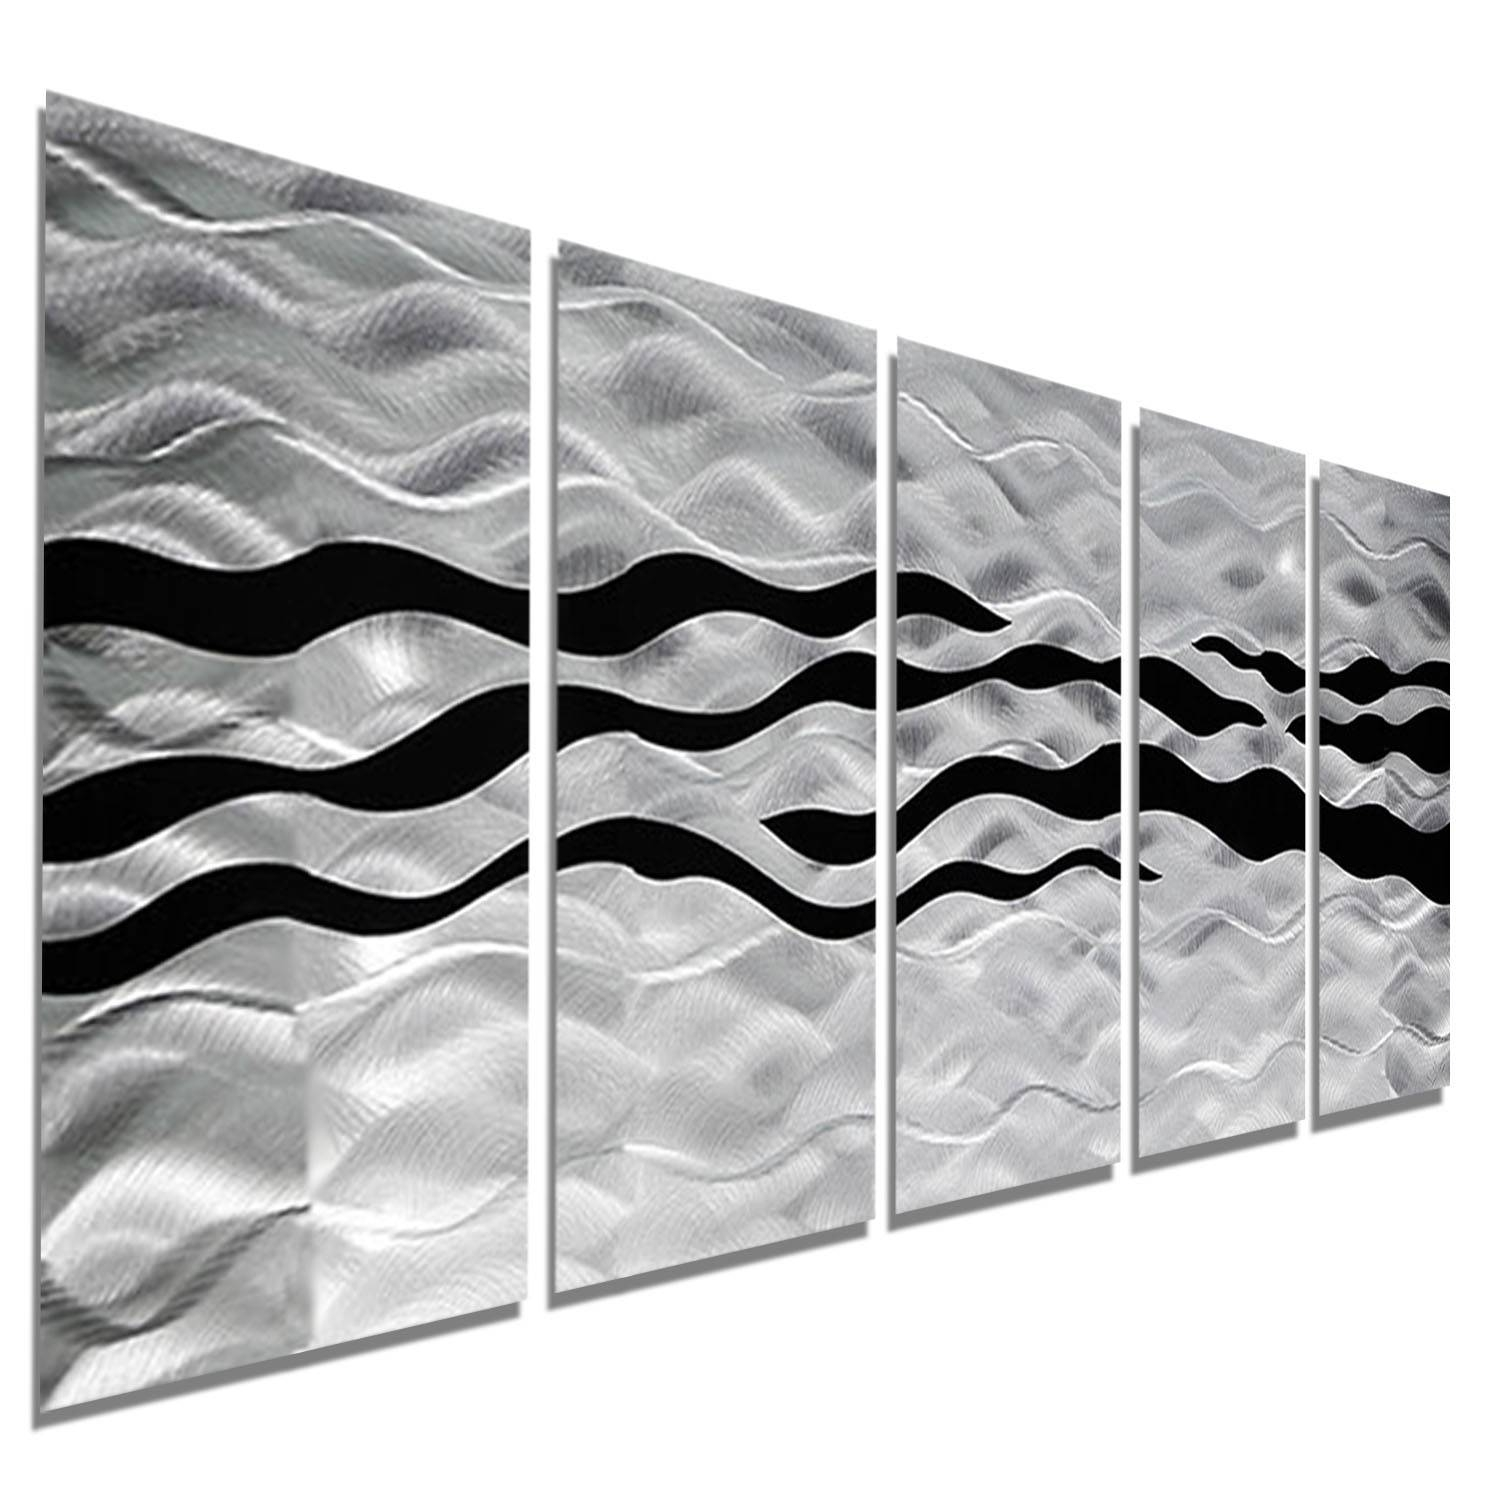 Onyx Oceana – Silver And Black Metal Wall Art – 5 Panel Wall Décor For Most Up To Date Black Silver Wall Art (View 10 of 20)